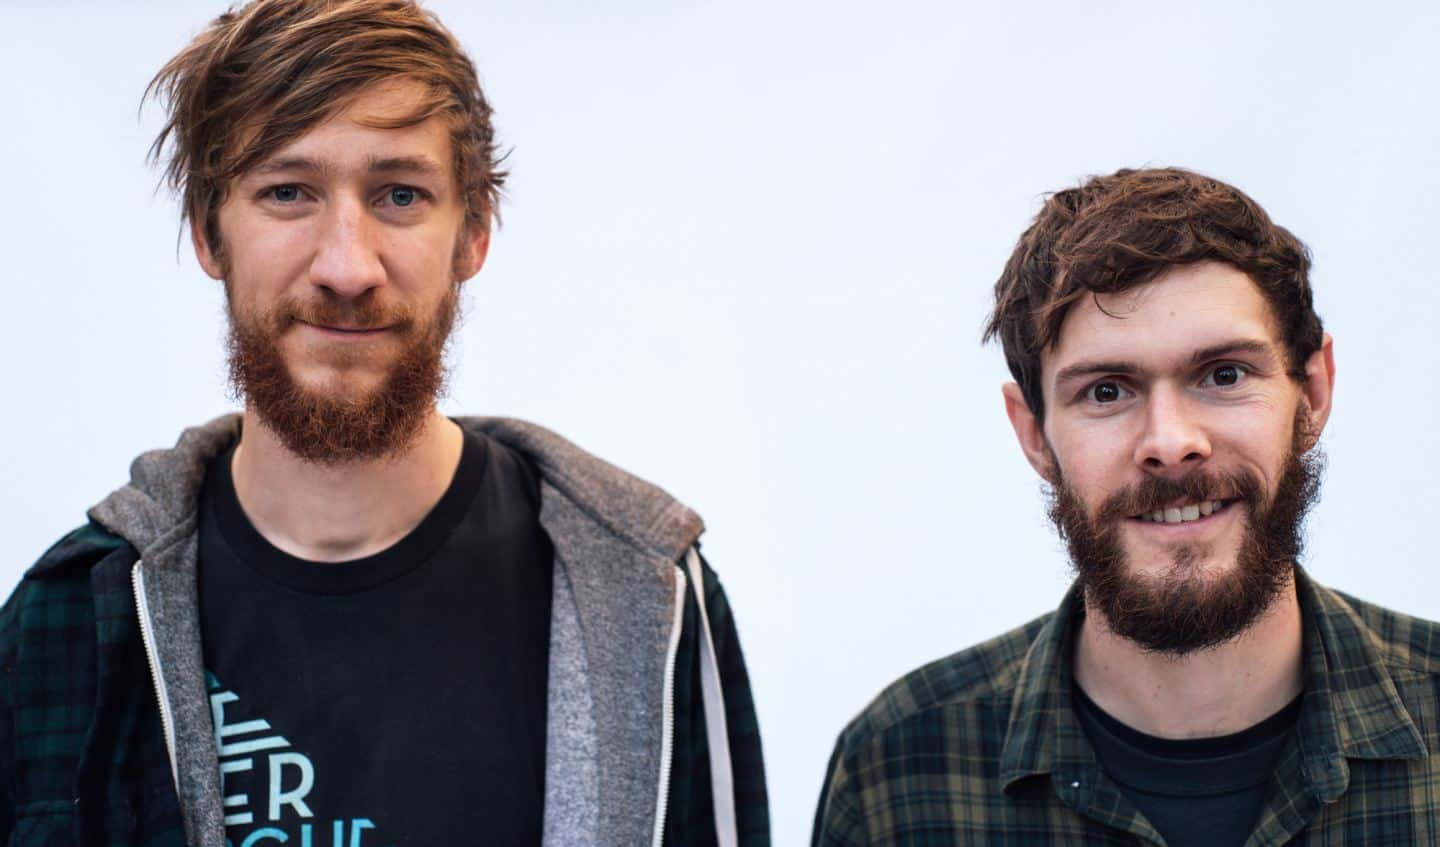 Josh Kennard and Oliver Milne, co-founders of Forge Creative